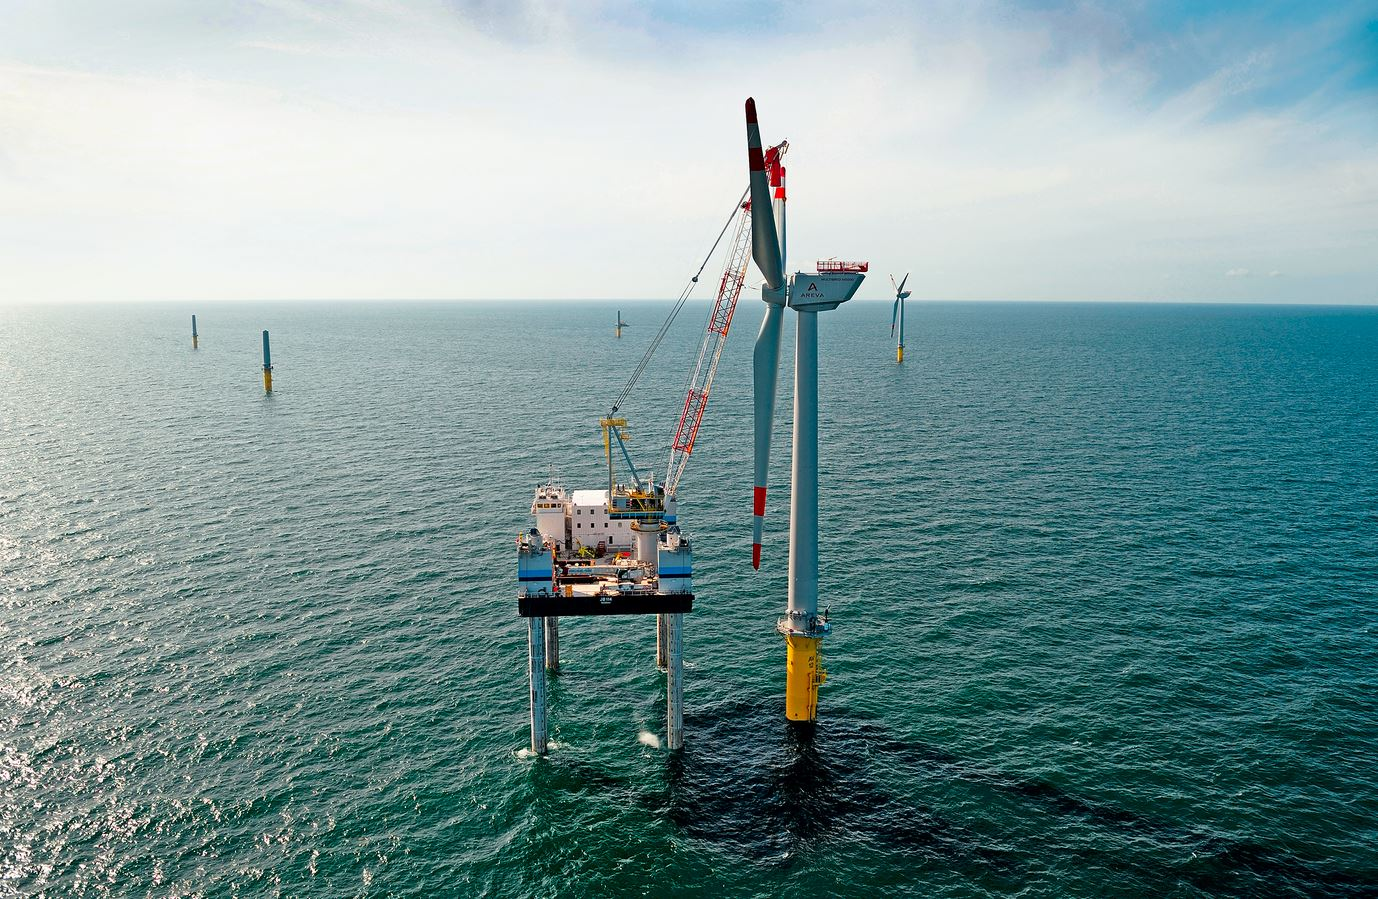 Offshore wind power expansion in Germany overtakes onshore for first time in 2019